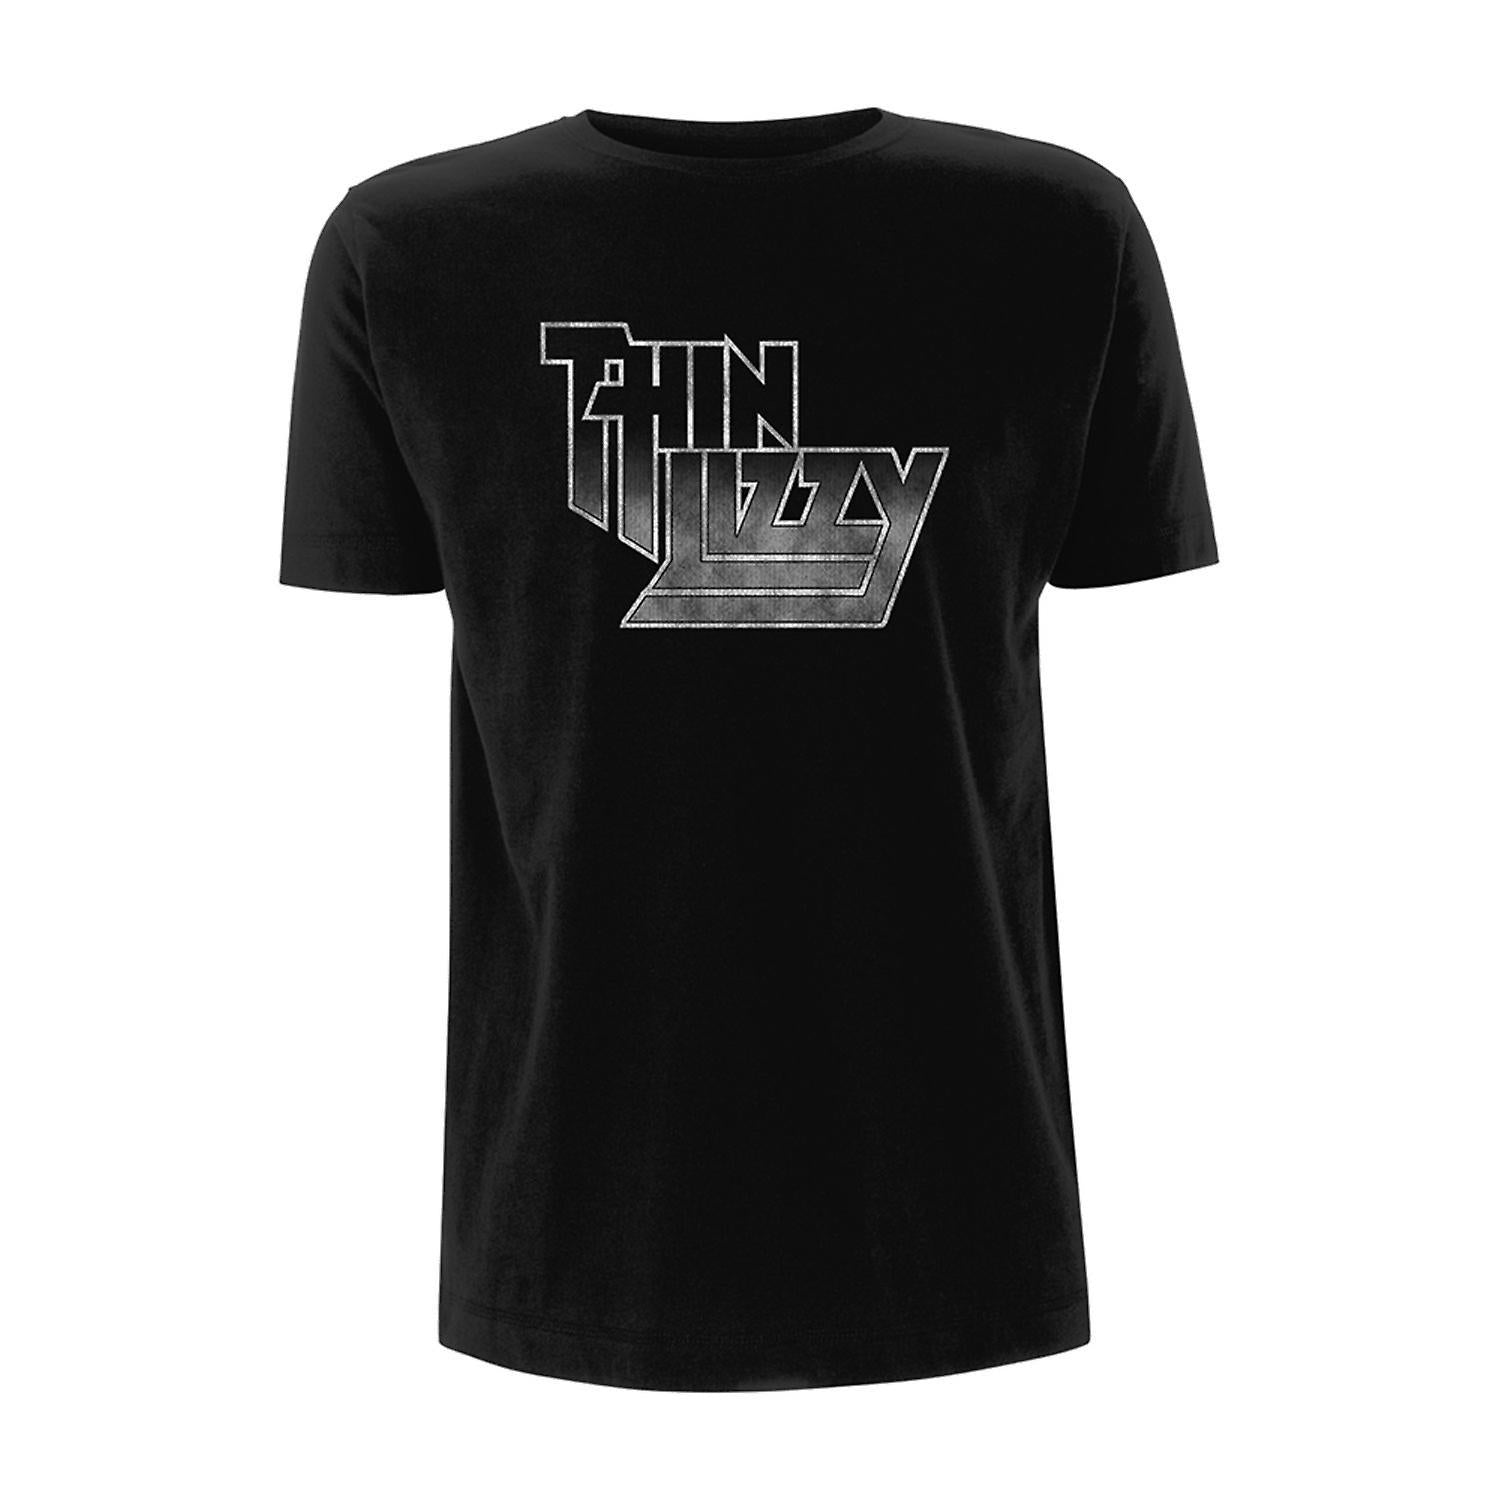 THIN LIZZY GRADIENT LOGO - SMALL [T-SHIRTS]